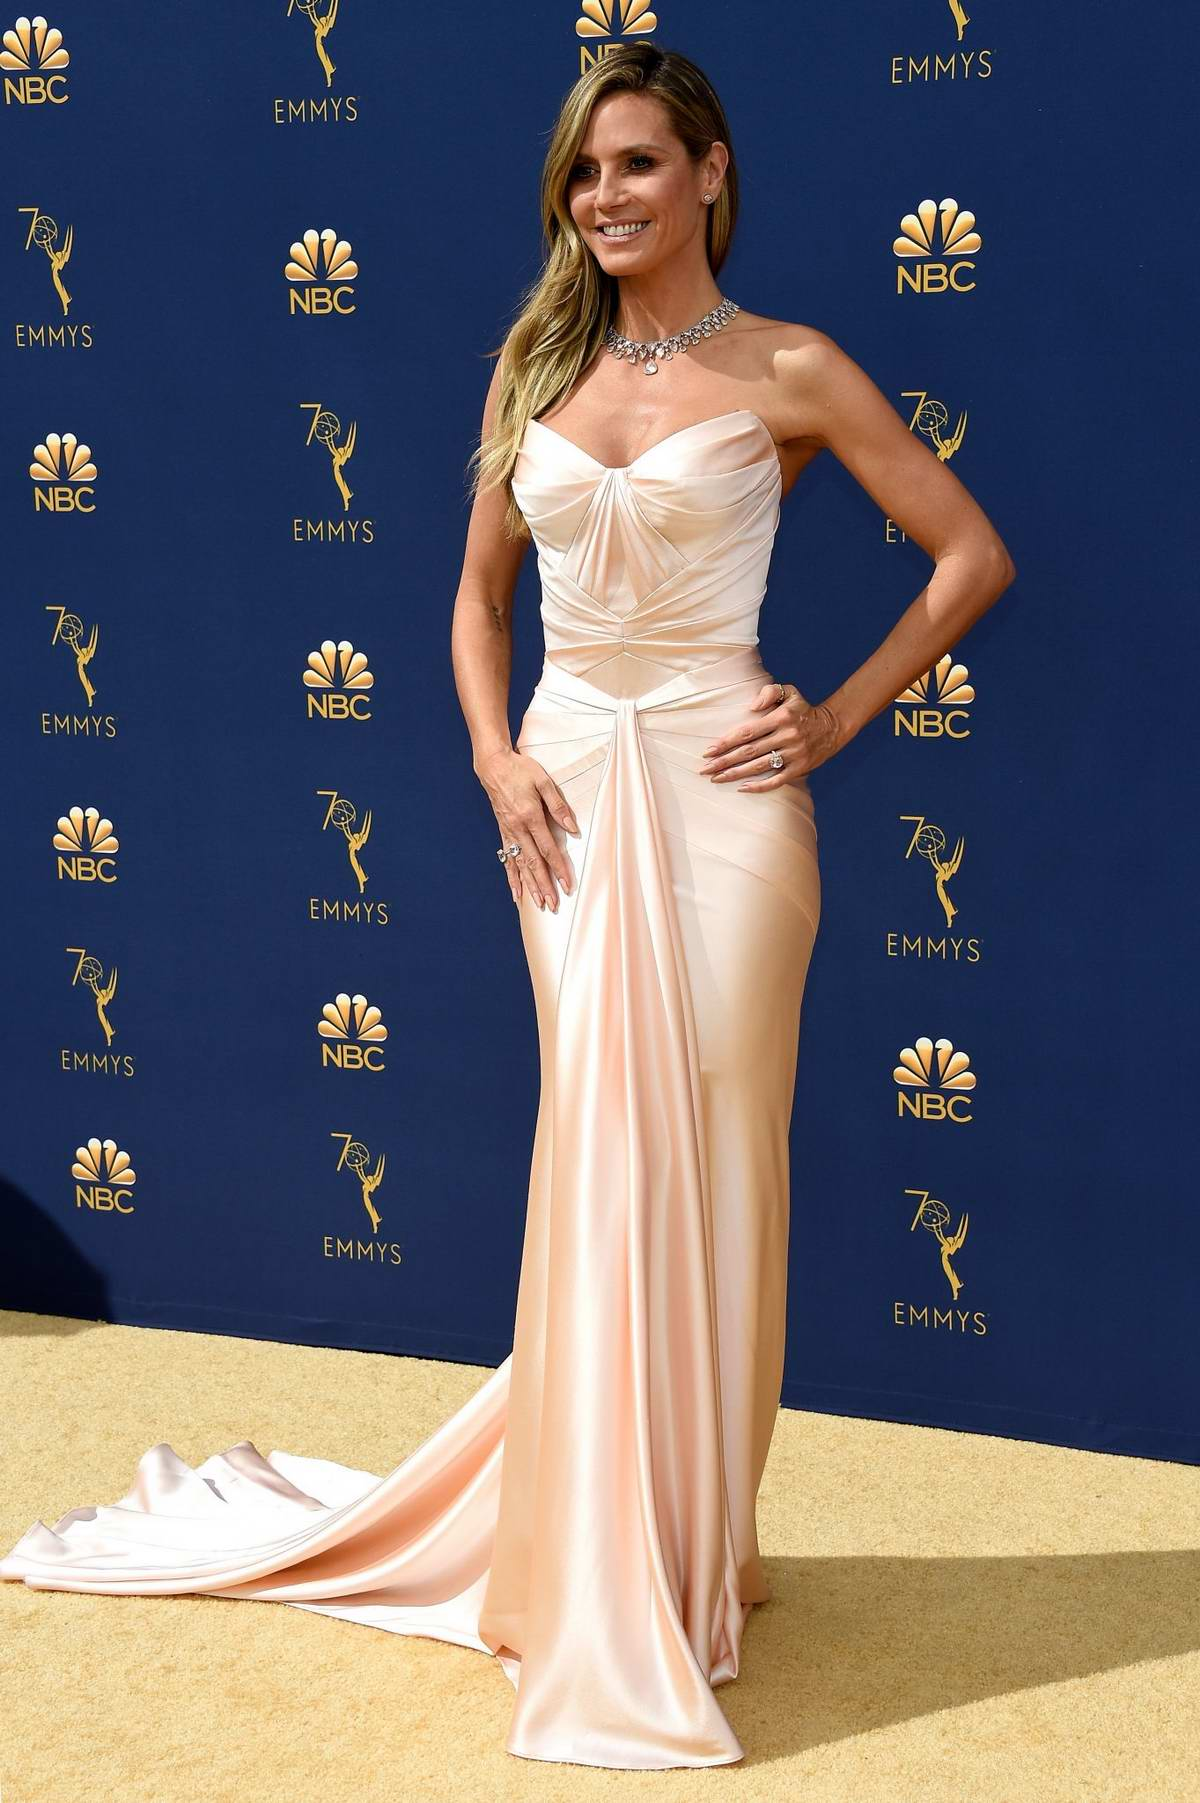 Heidi Klum attends the 70th Primetime EMMY Awards (EMMYS 2018) at Microsoft Theater in Los Angeles